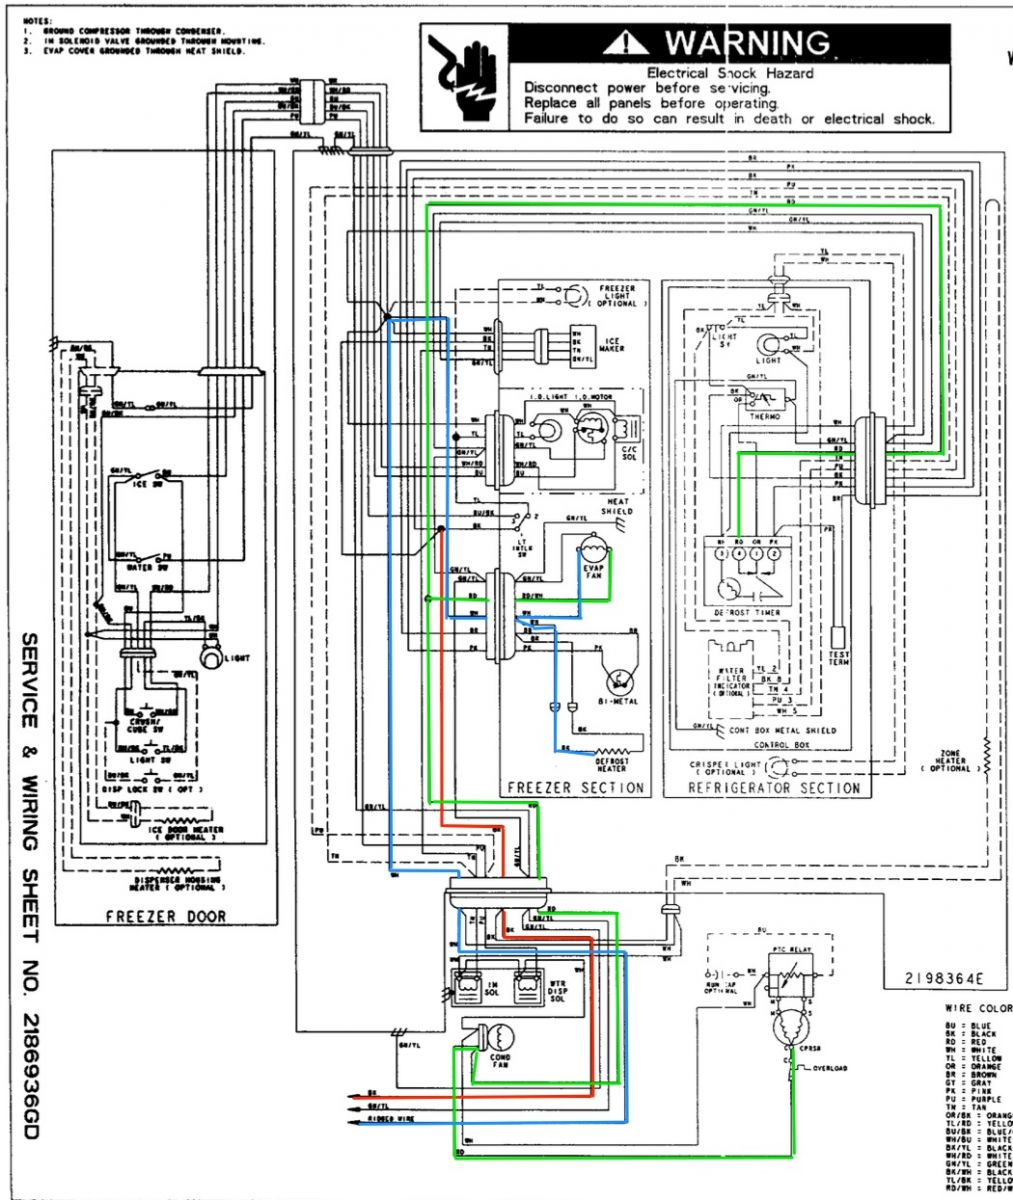 Diagram Freezer Wiring Cpf100c Layout Diagrams Walk In Schematics Electrical Rh Wiringforall Today